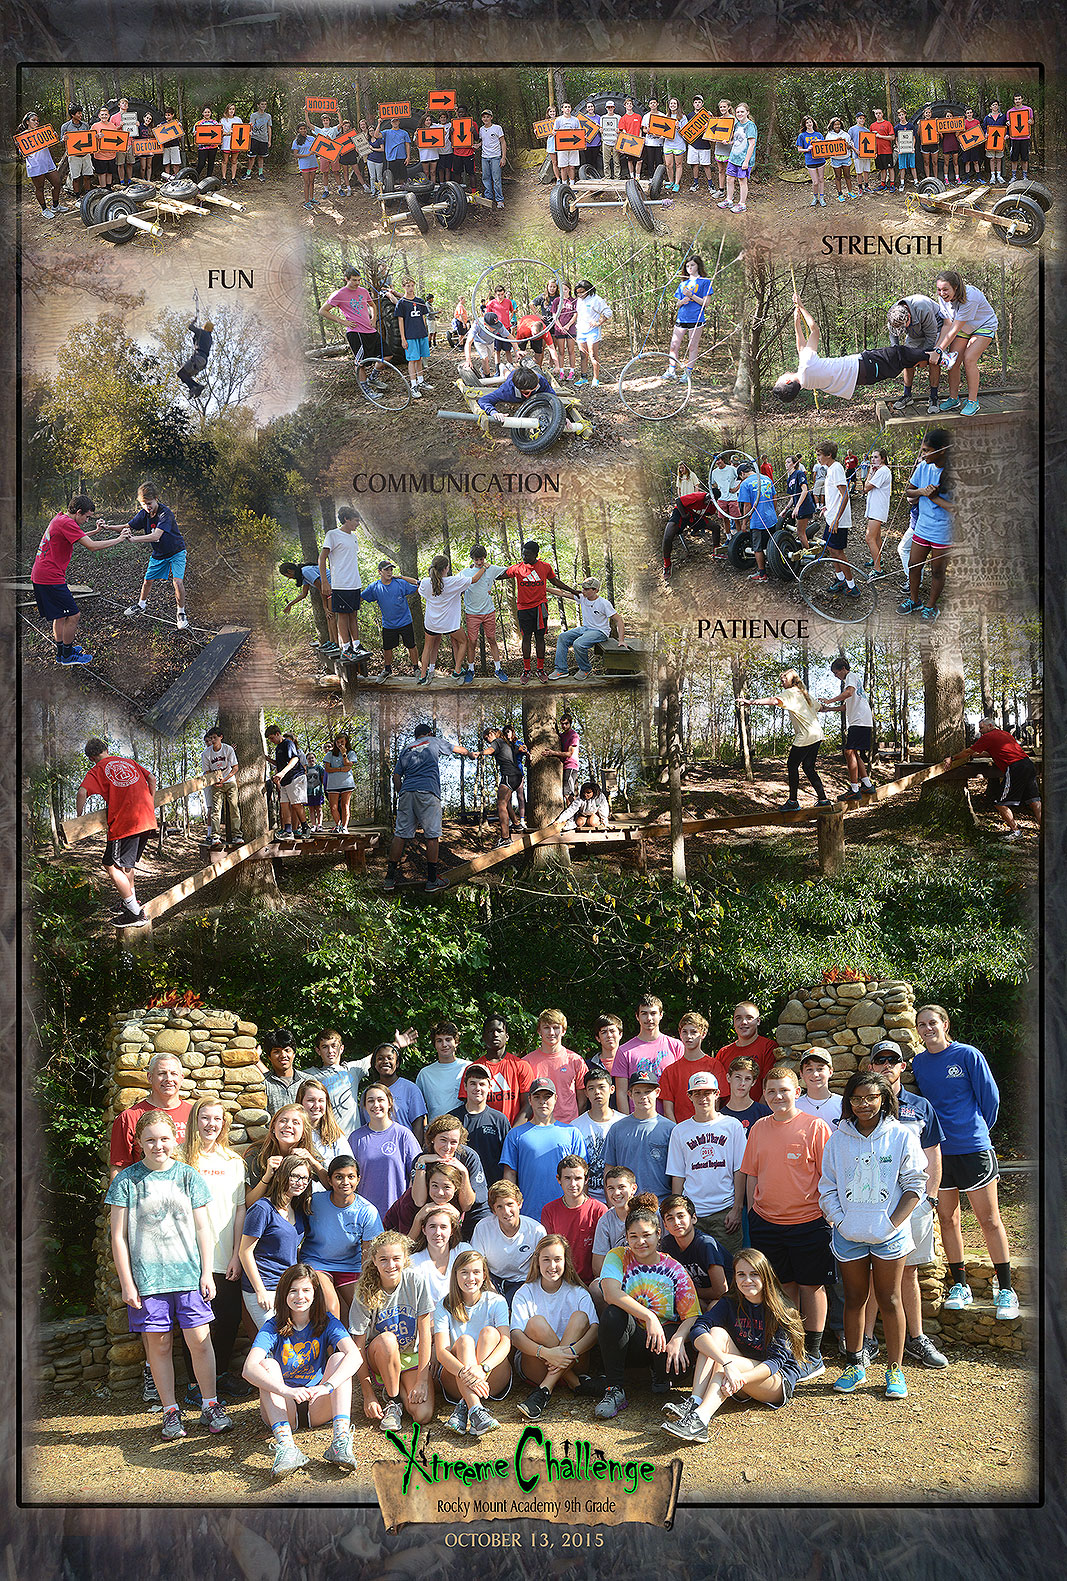 Rocky Mount Academy 9th Grade Class at Xtreeme Challenge Team Building Center in Monroe North Carolina